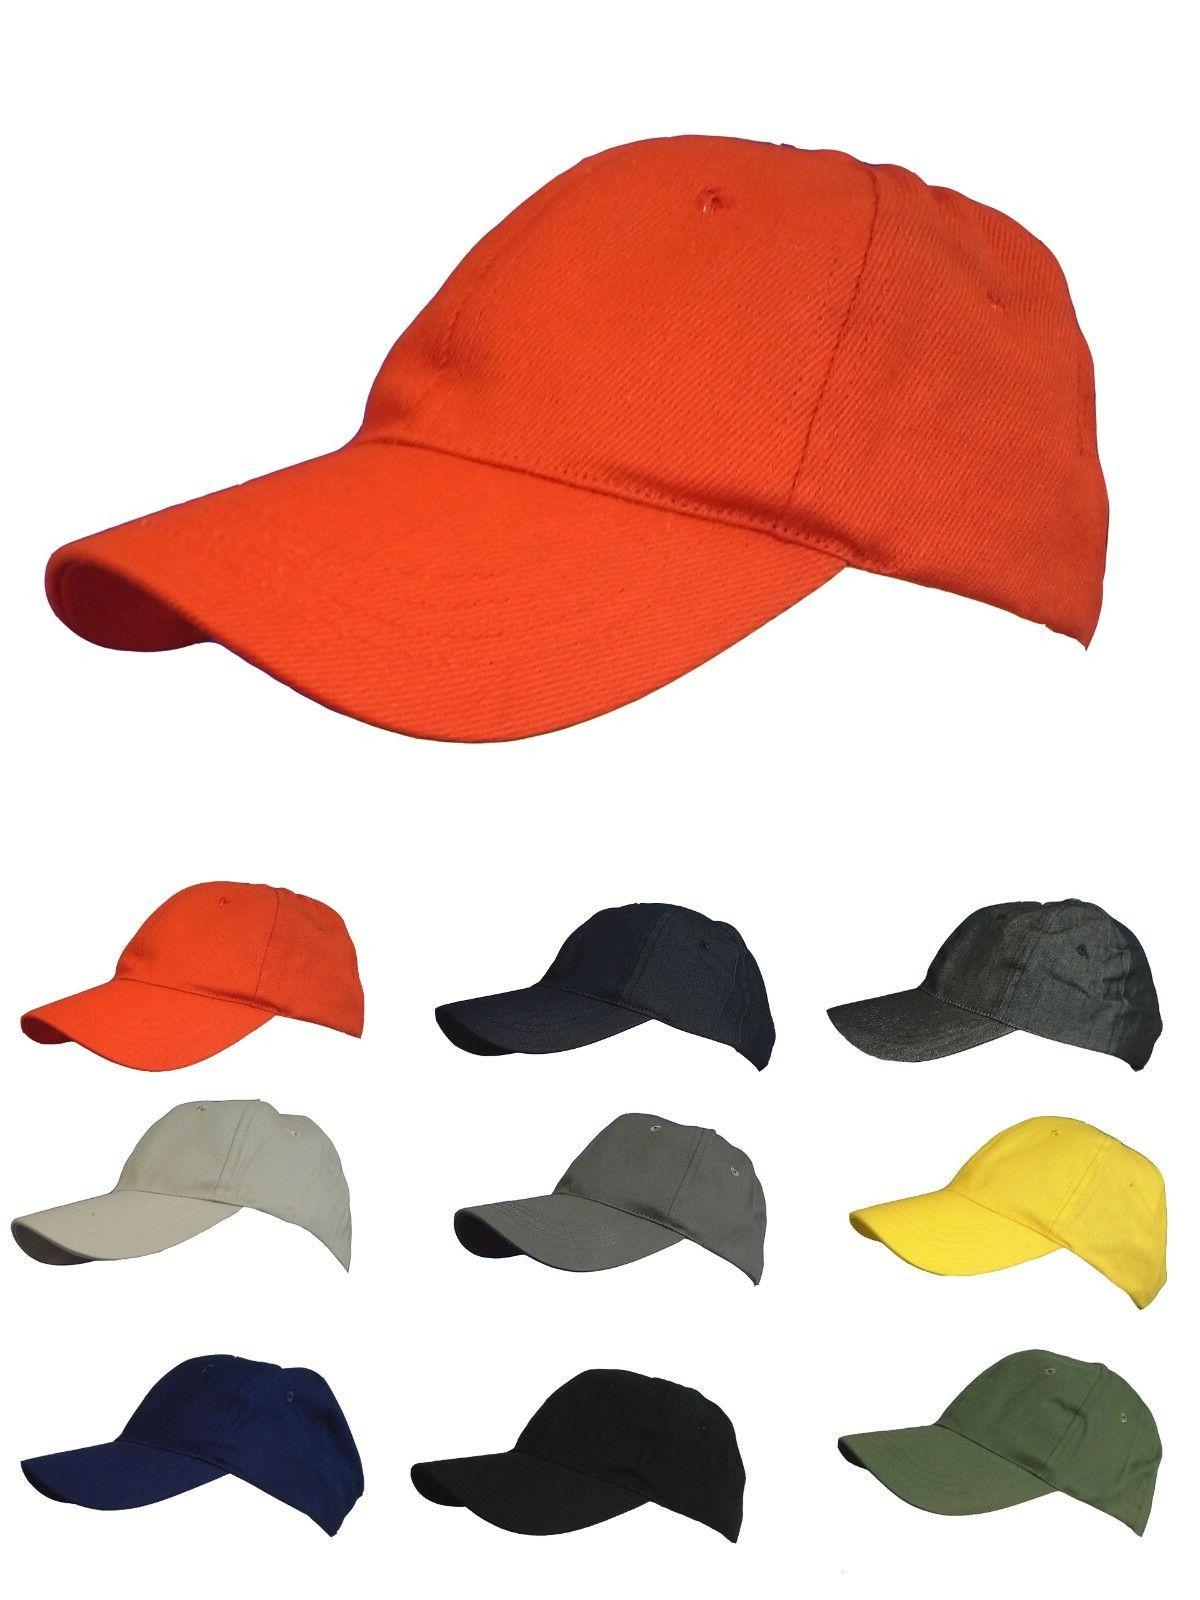 Masraze Plain Cotton Baseball Men/Women Hat Hats Adjustable